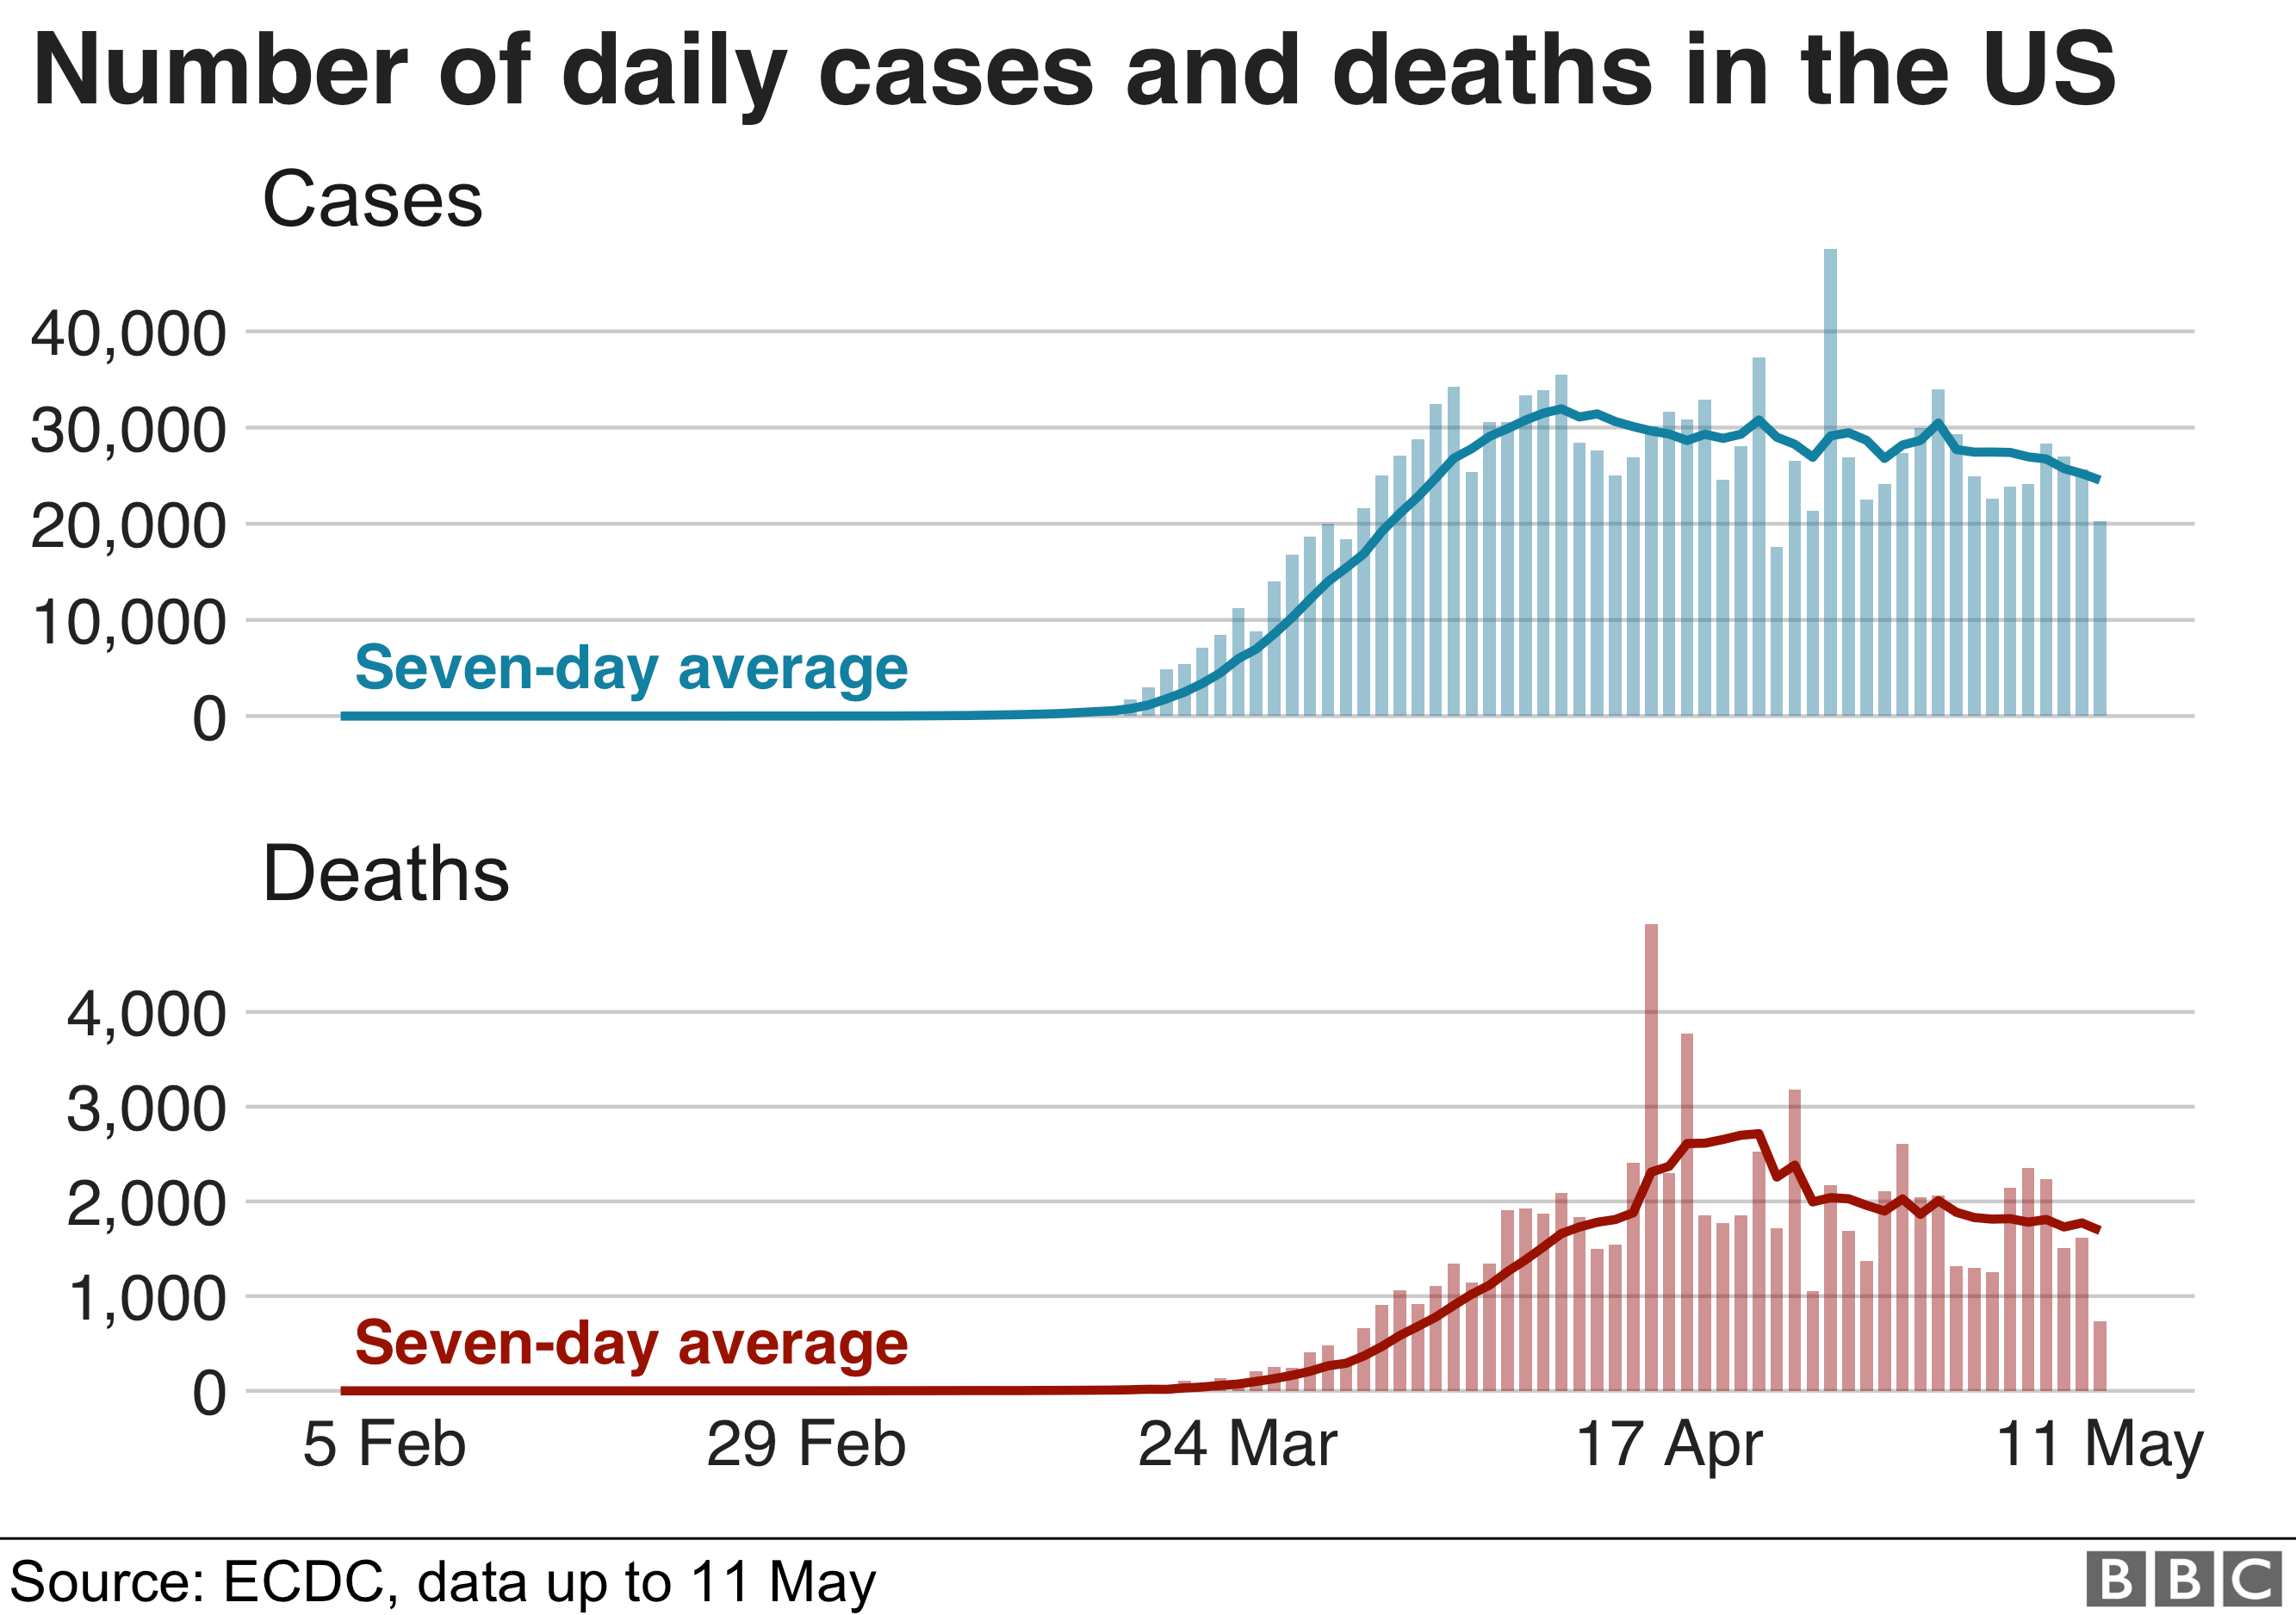 Graph showing the number of daily cases and deaths in the US